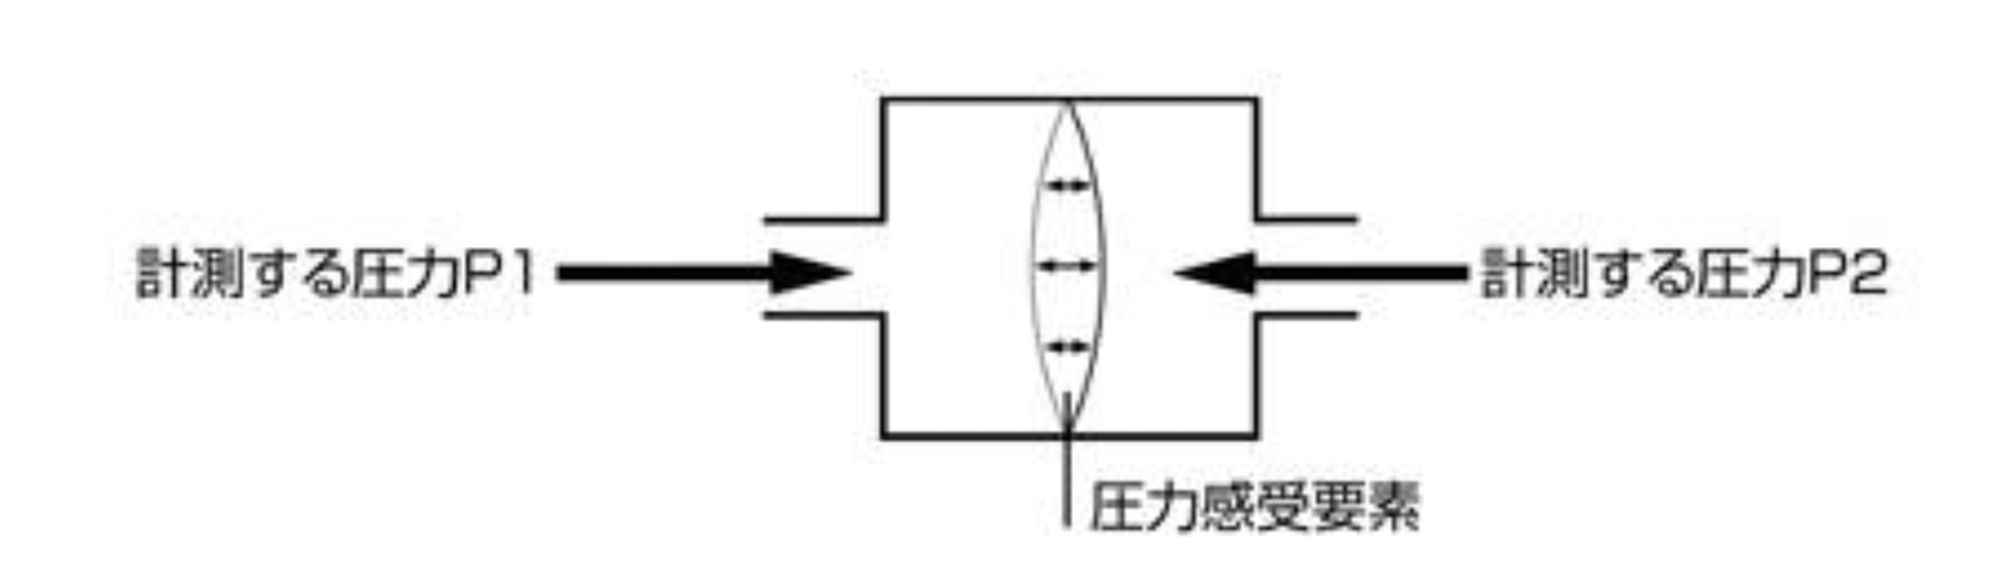 jp_differential_pressure_FAQ_2.jpg